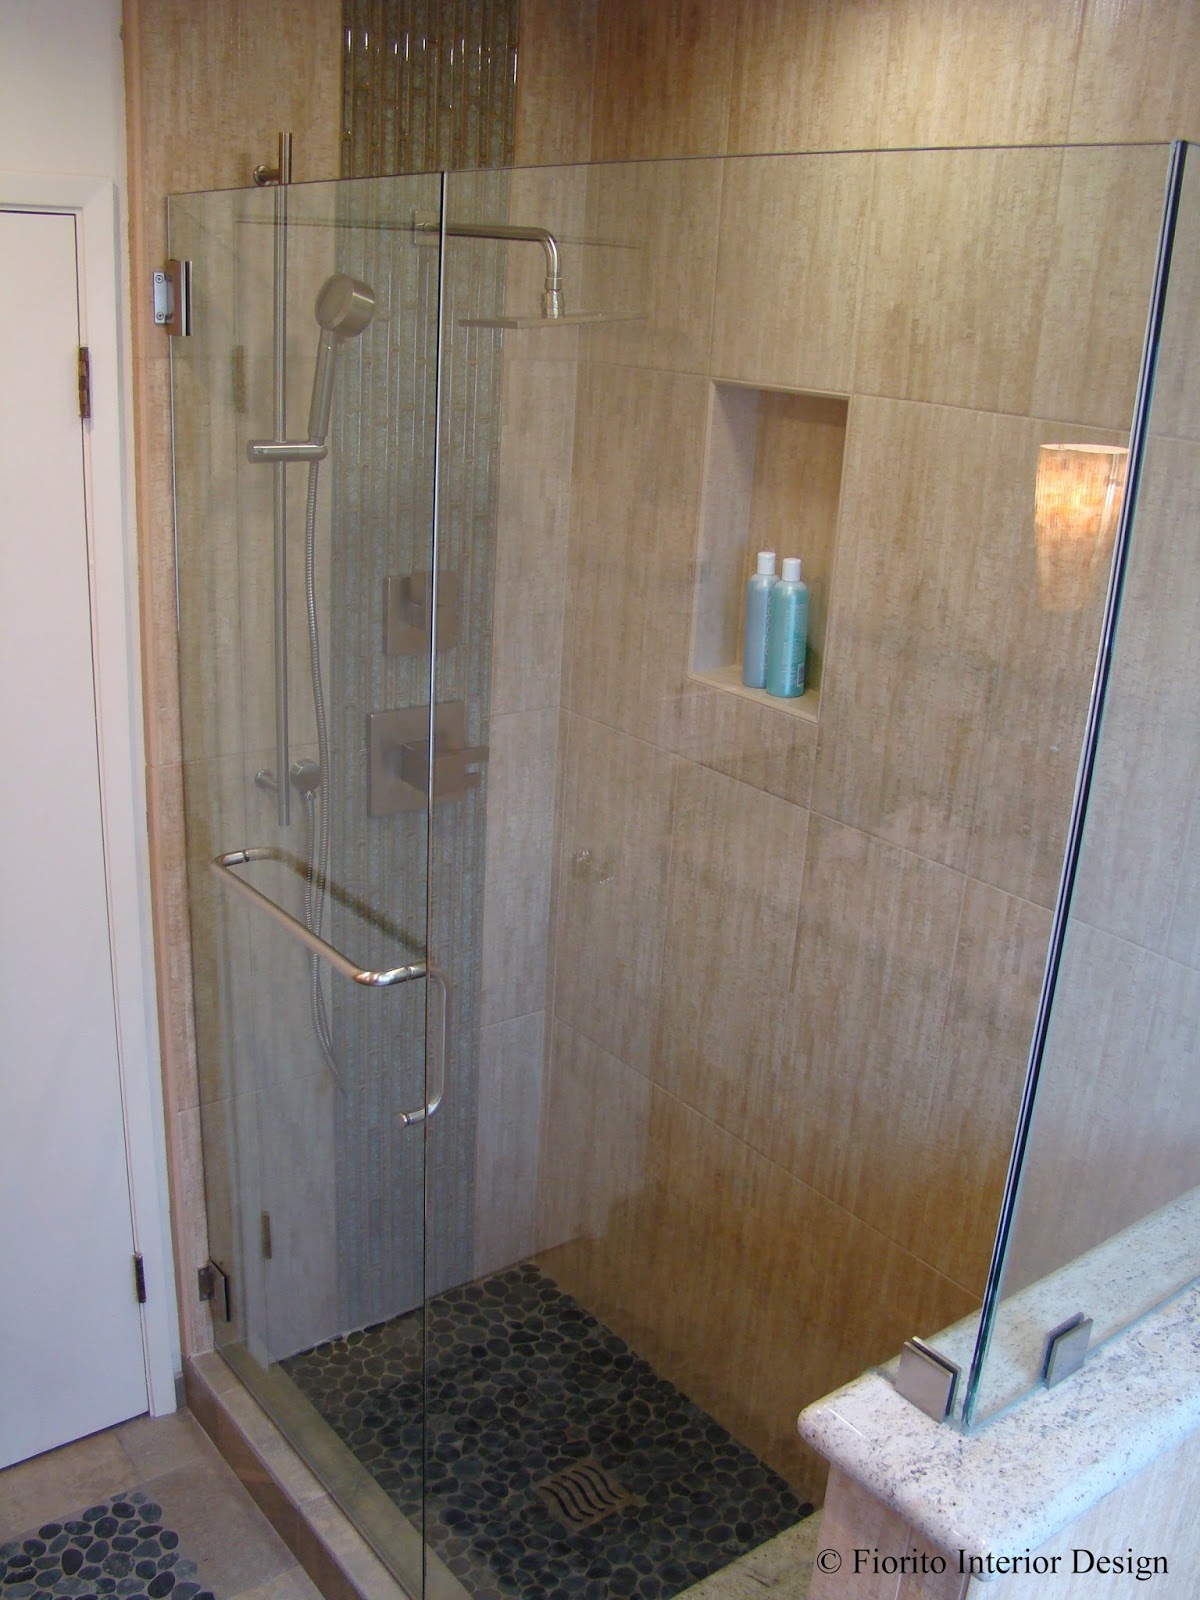 Waterfall Showers Designs Fiorito Interior Design An Island Bathroom By Fiorito